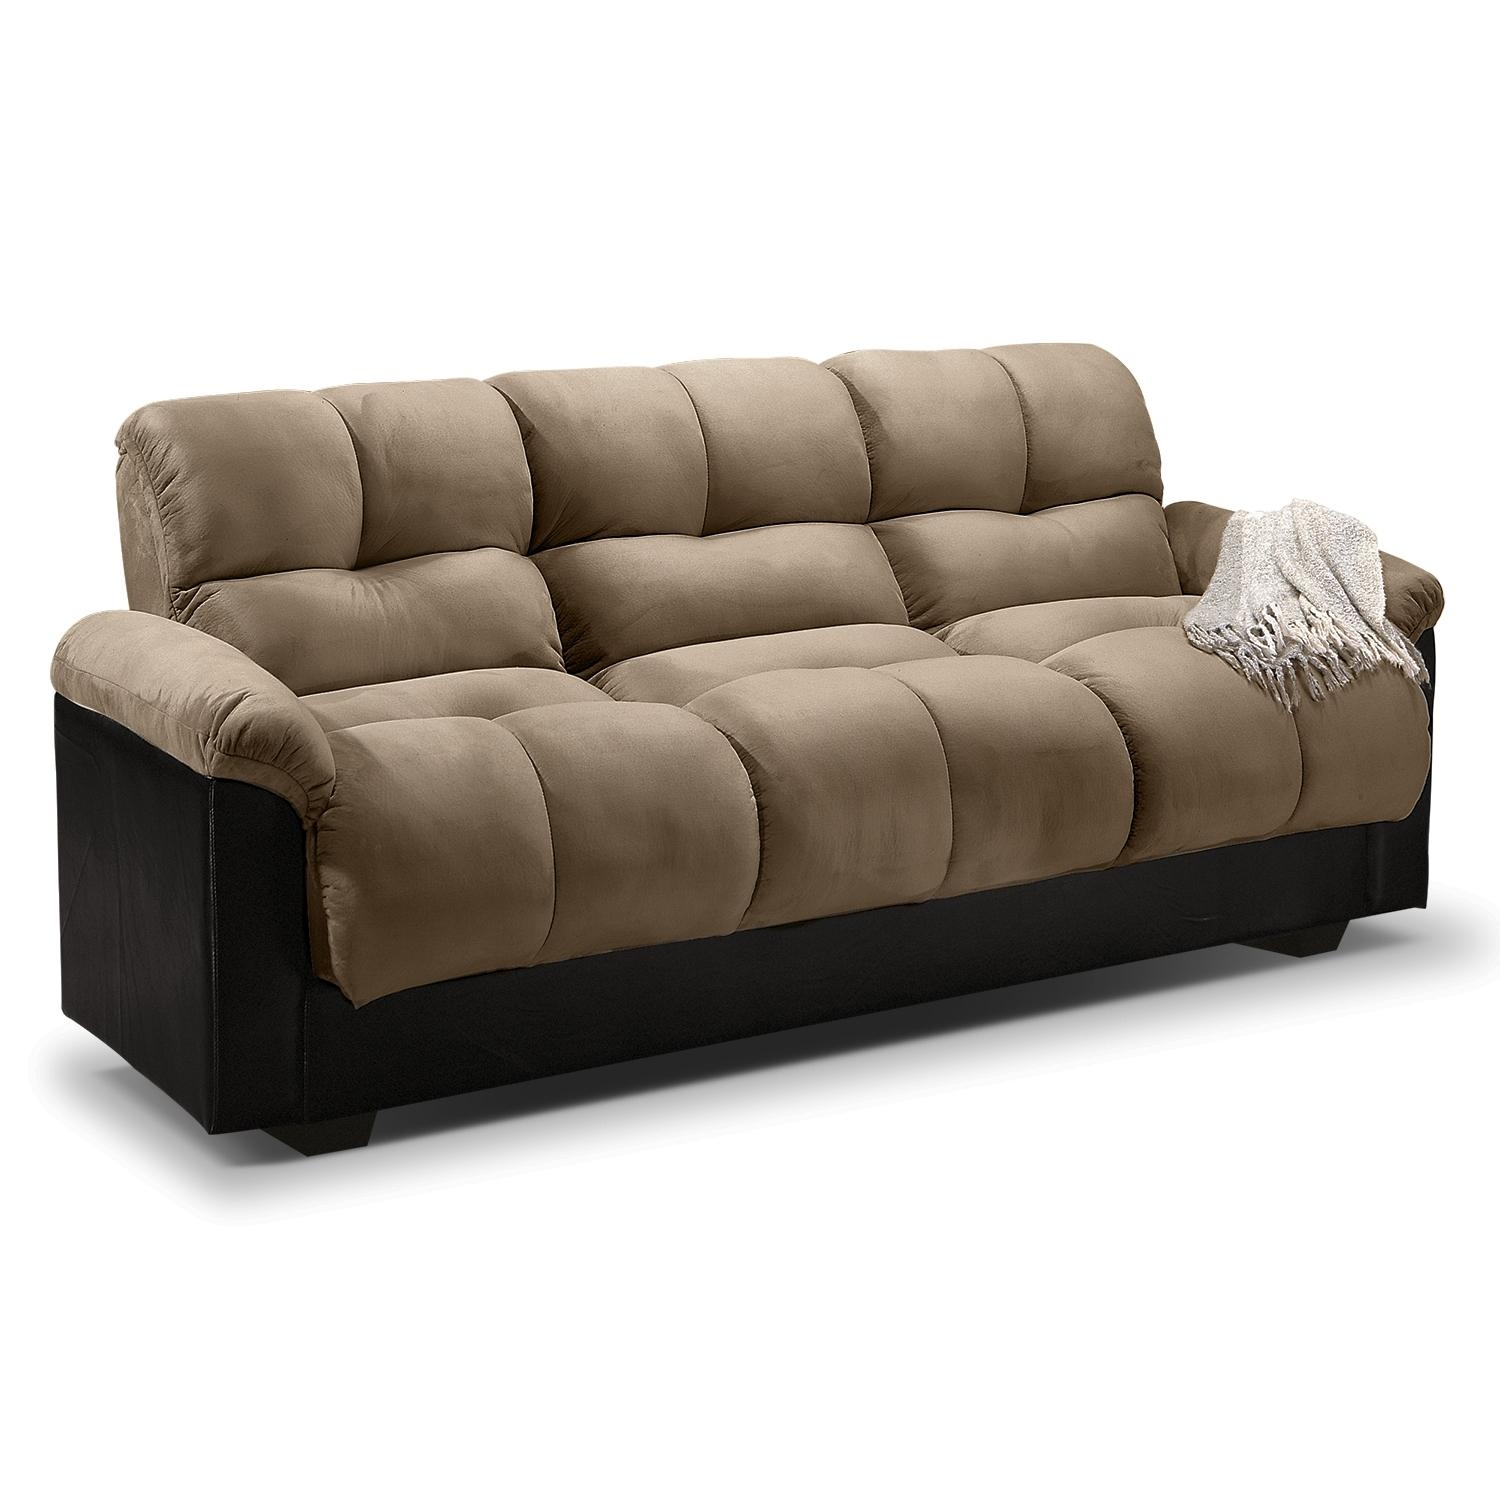 20 Best Ideas Convertible Futon Sofa Beds